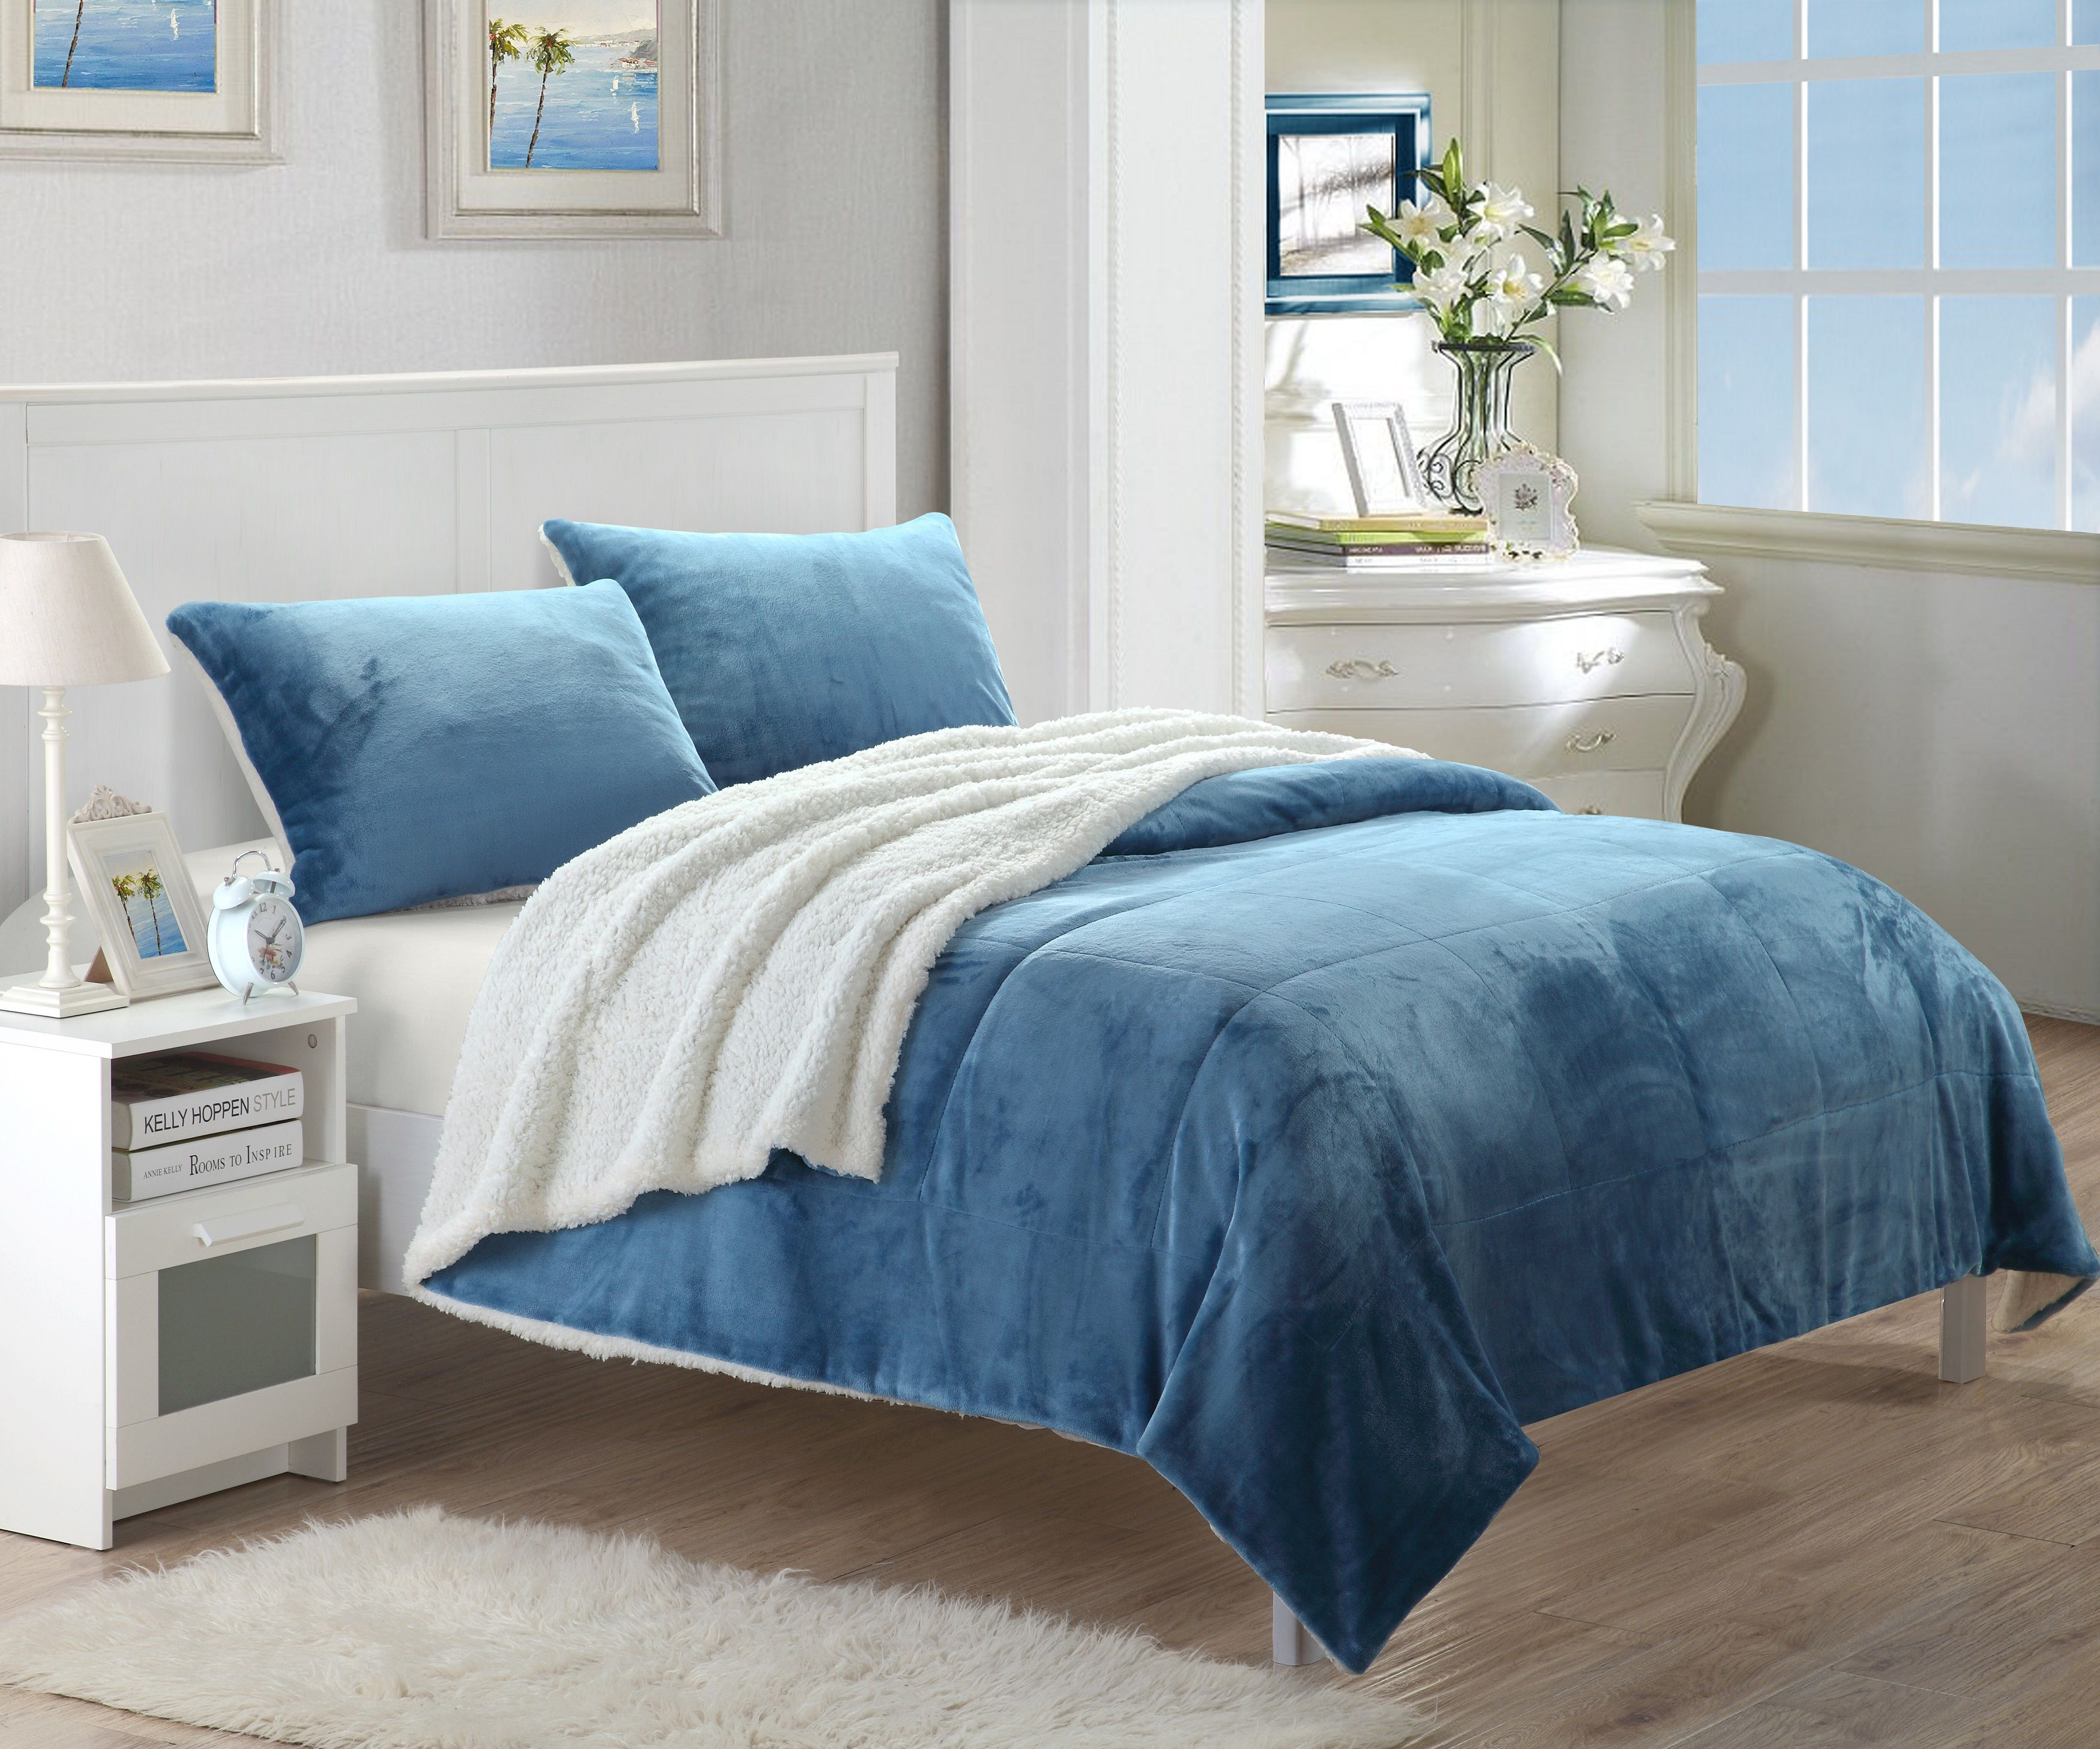 this a throughout stars warm has one polar and itm petface bedding cuddle embroidered corner kitten from me words fleece pattern pet fun puppy blanket soft range star comforter the dog onto little